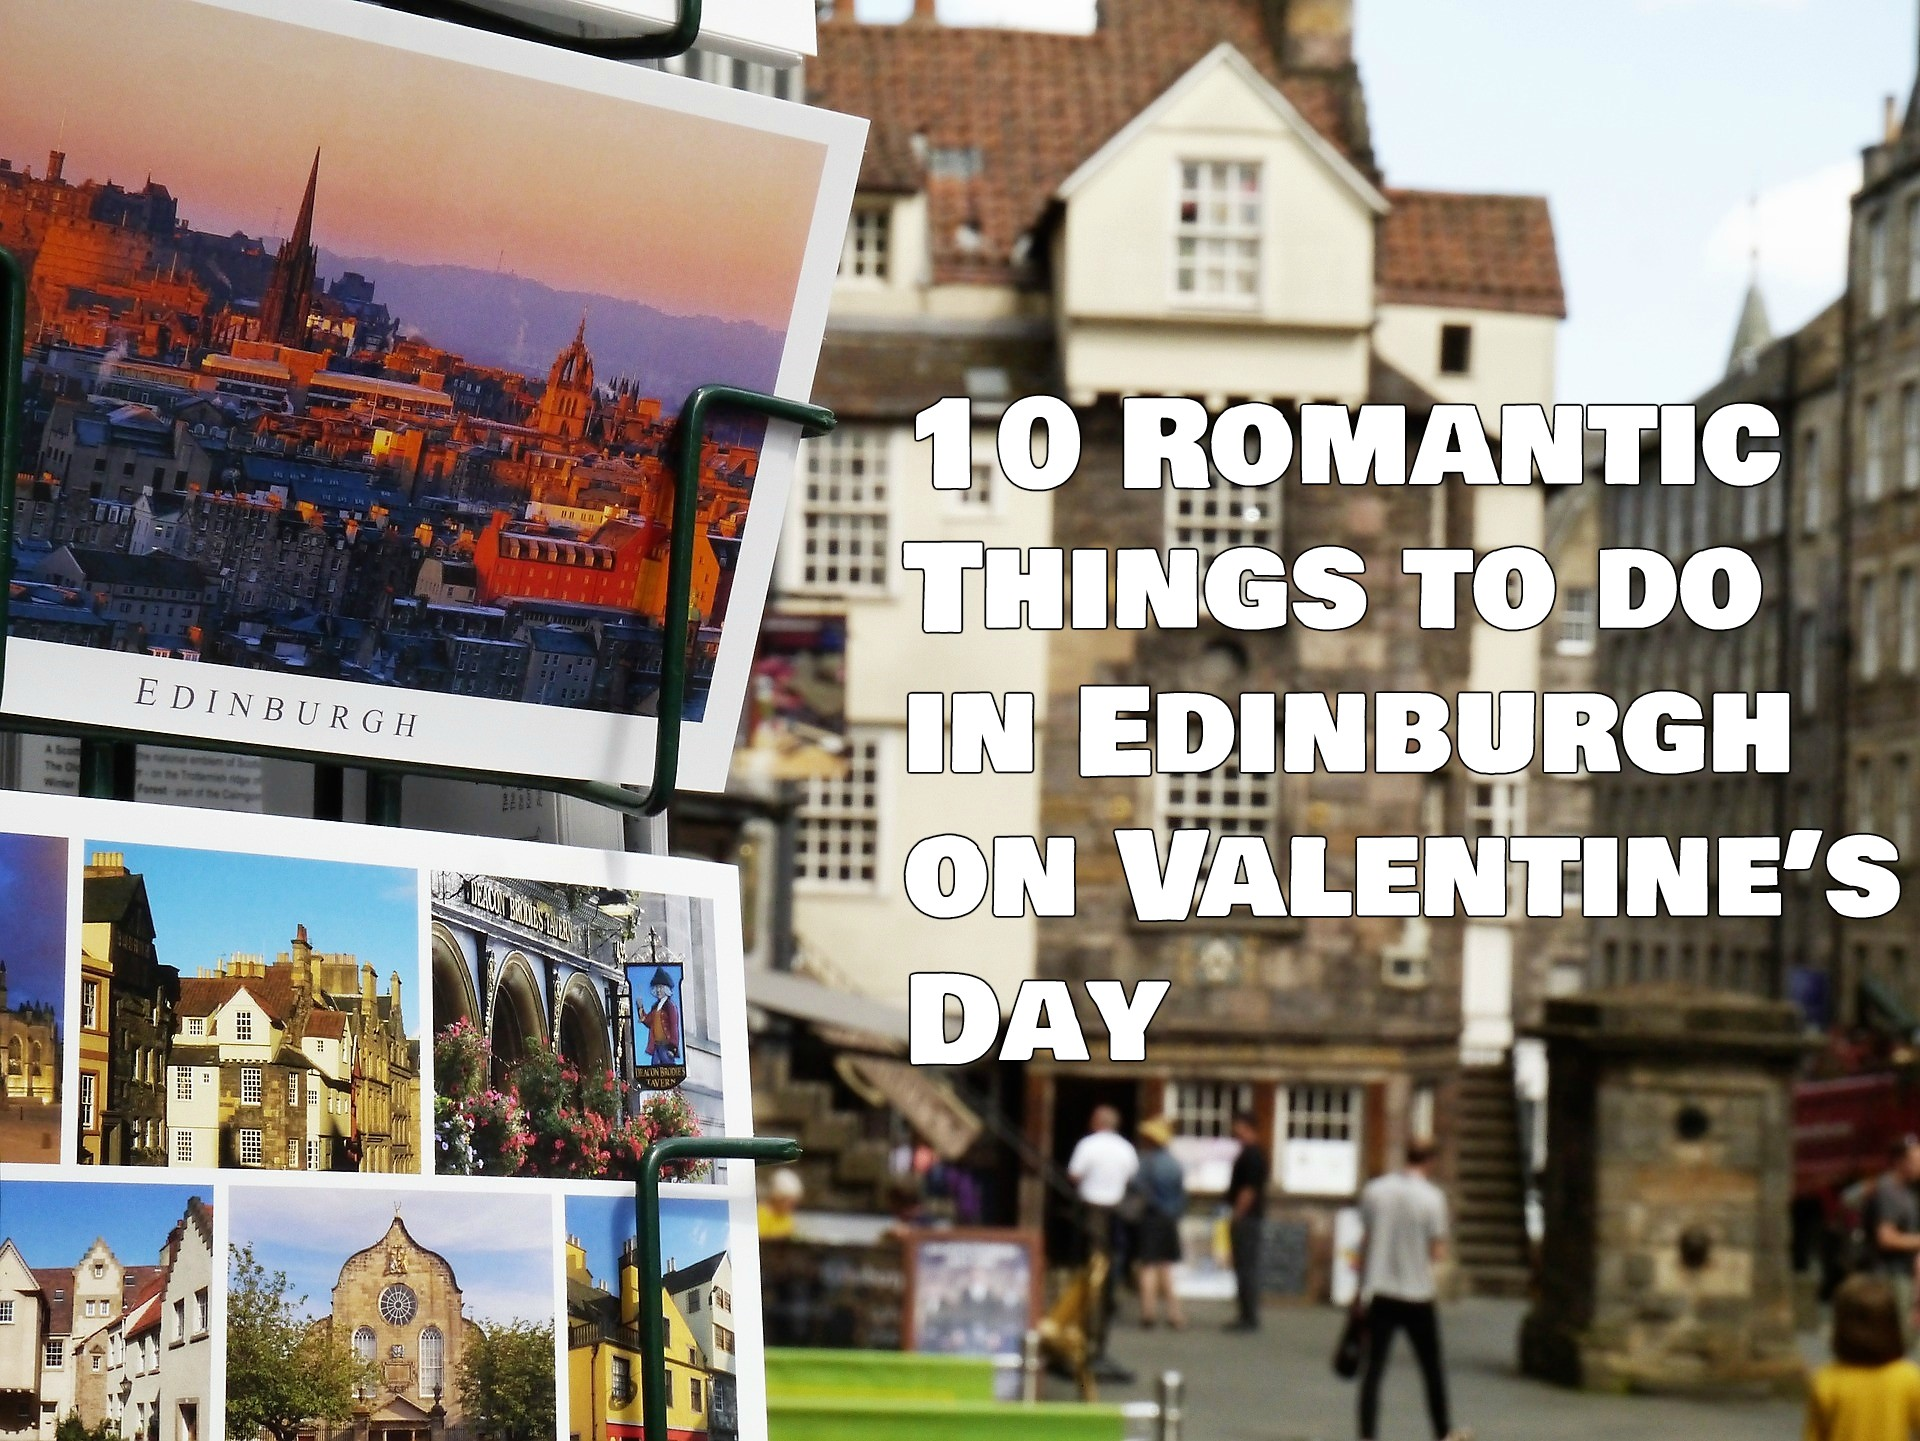 10 Romantic Things to do in Edinburgh on Valentine's Day in 2019